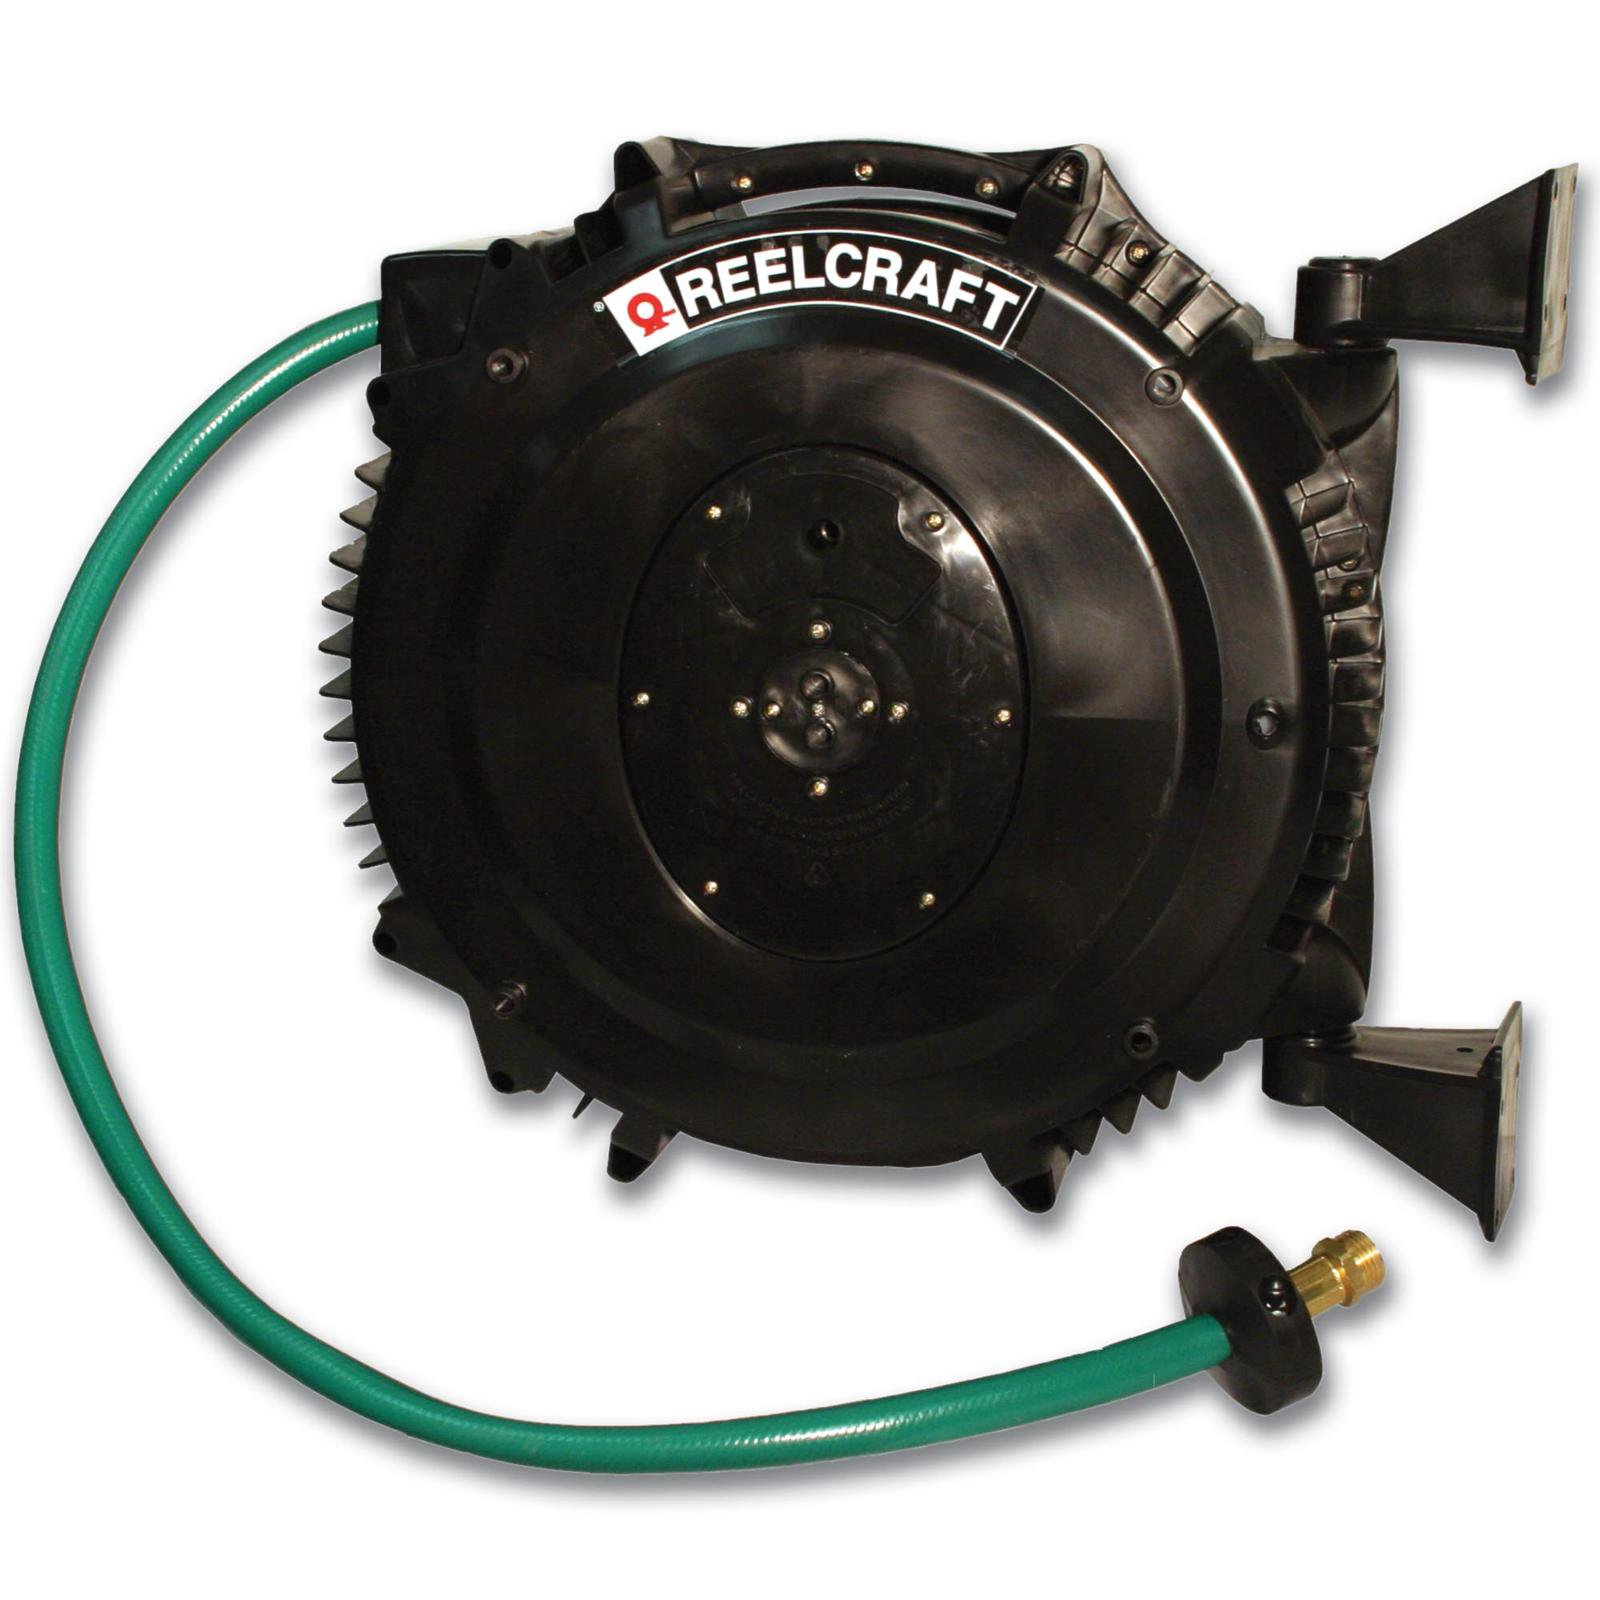 ReelCraft Contractor Grade Water Hose Reel with PVC Hose by Reelcraft